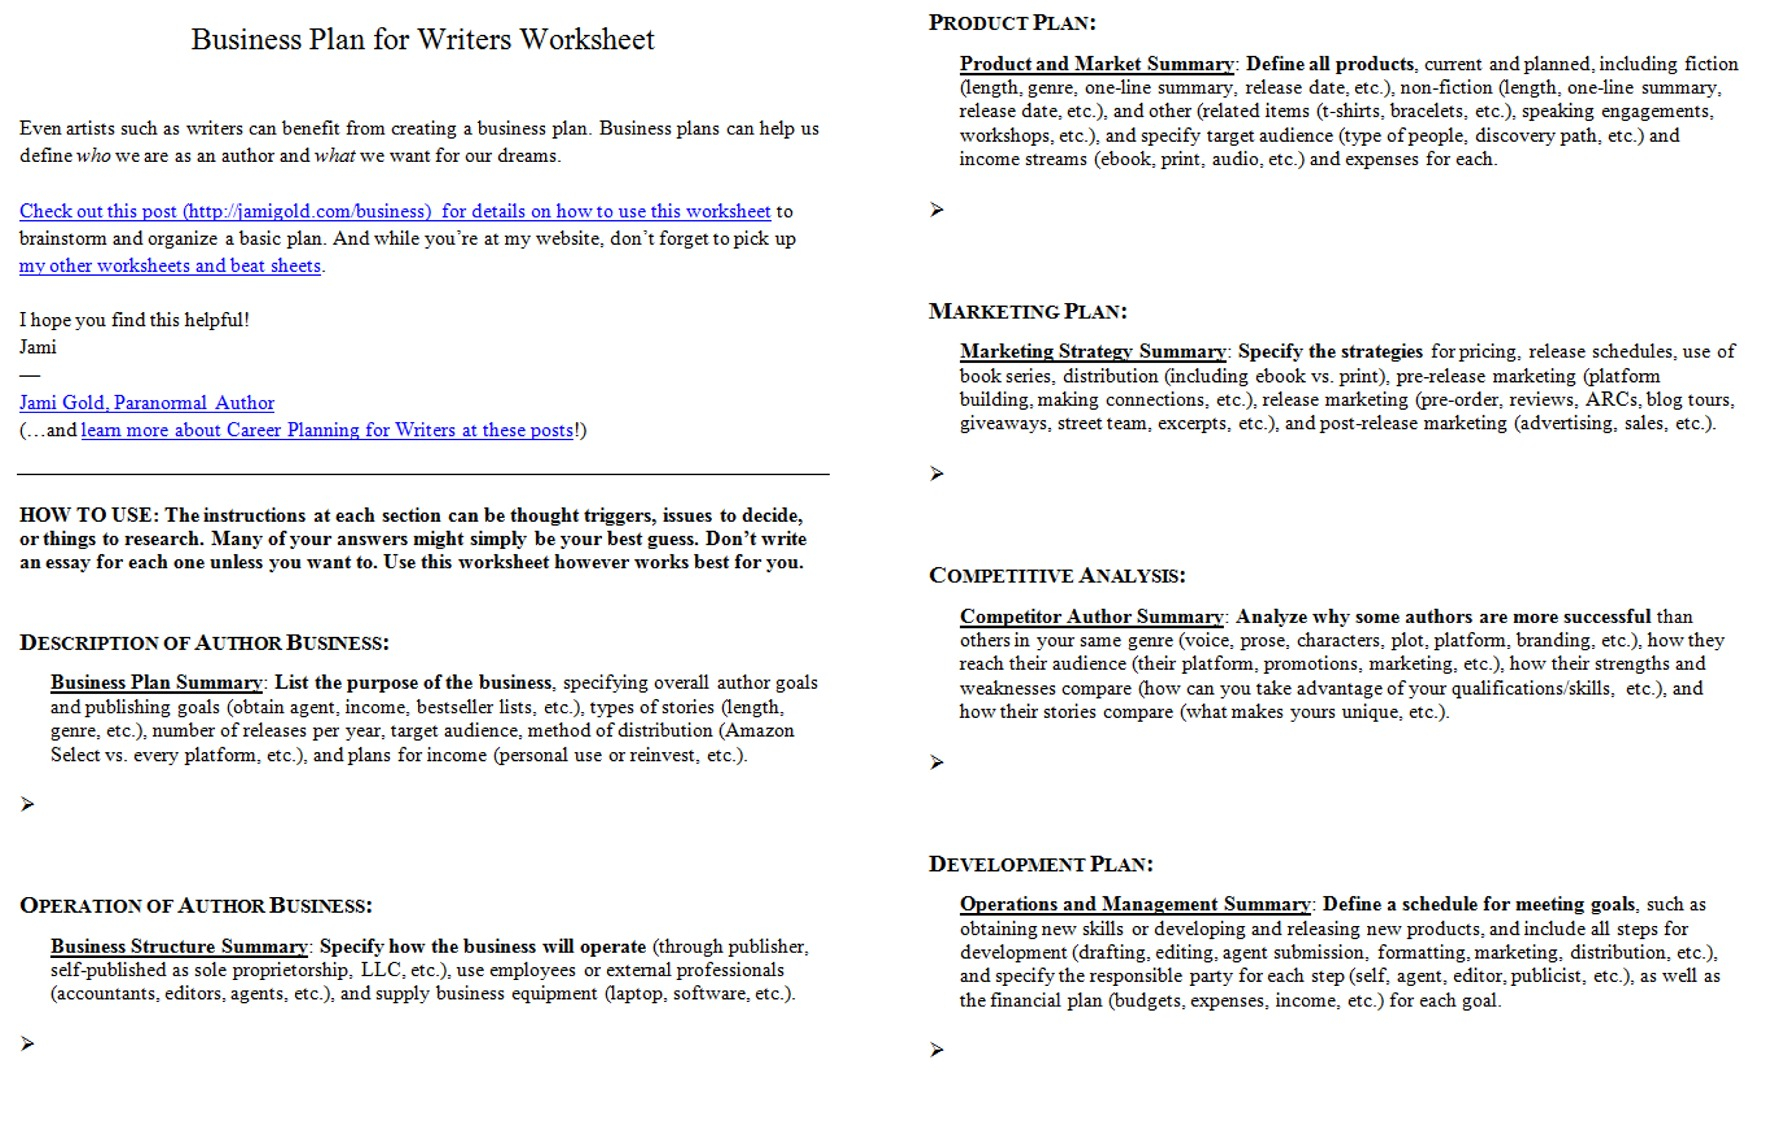 Aldiablosus  Ravishing Worksheets For Writers  Jami Gold Paranormal Author With Excellent Screen Shot Of Both Pages Of The Business Plan For Writers Worksheet With Cool Basic Addition Facts Worksheet Also World War Worksheets In Addition Add Subtract Worksheet And Ratios Word Problems Worksheets As Well As Solving Addition Equations Worksheet Additionally Create Your Own Printable Worksheets From Jamigoldcom With Aldiablosus  Excellent Worksheets For Writers  Jami Gold Paranormal Author With Cool Screen Shot Of Both Pages Of The Business Plan For Writers Worksheet And Ravishing Basic Addition Facts Worksheet Also World War Worksheets In Addition Add Subtract Worksheet From Jamigoldcom